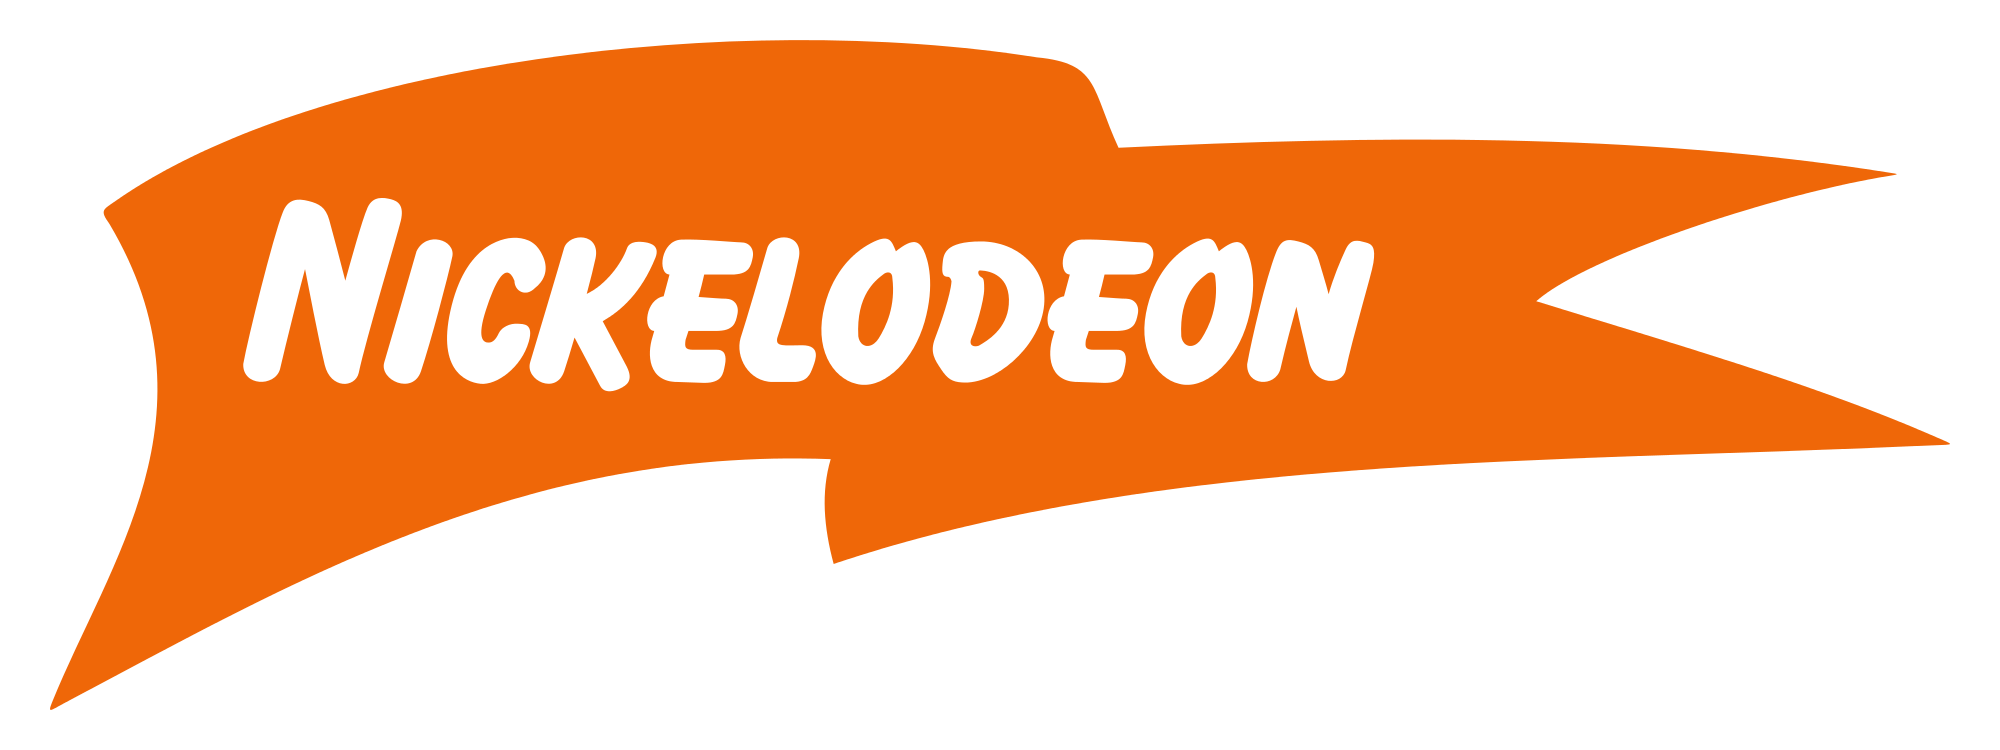 Nickelodeon logo png. File svg wikimedia commons